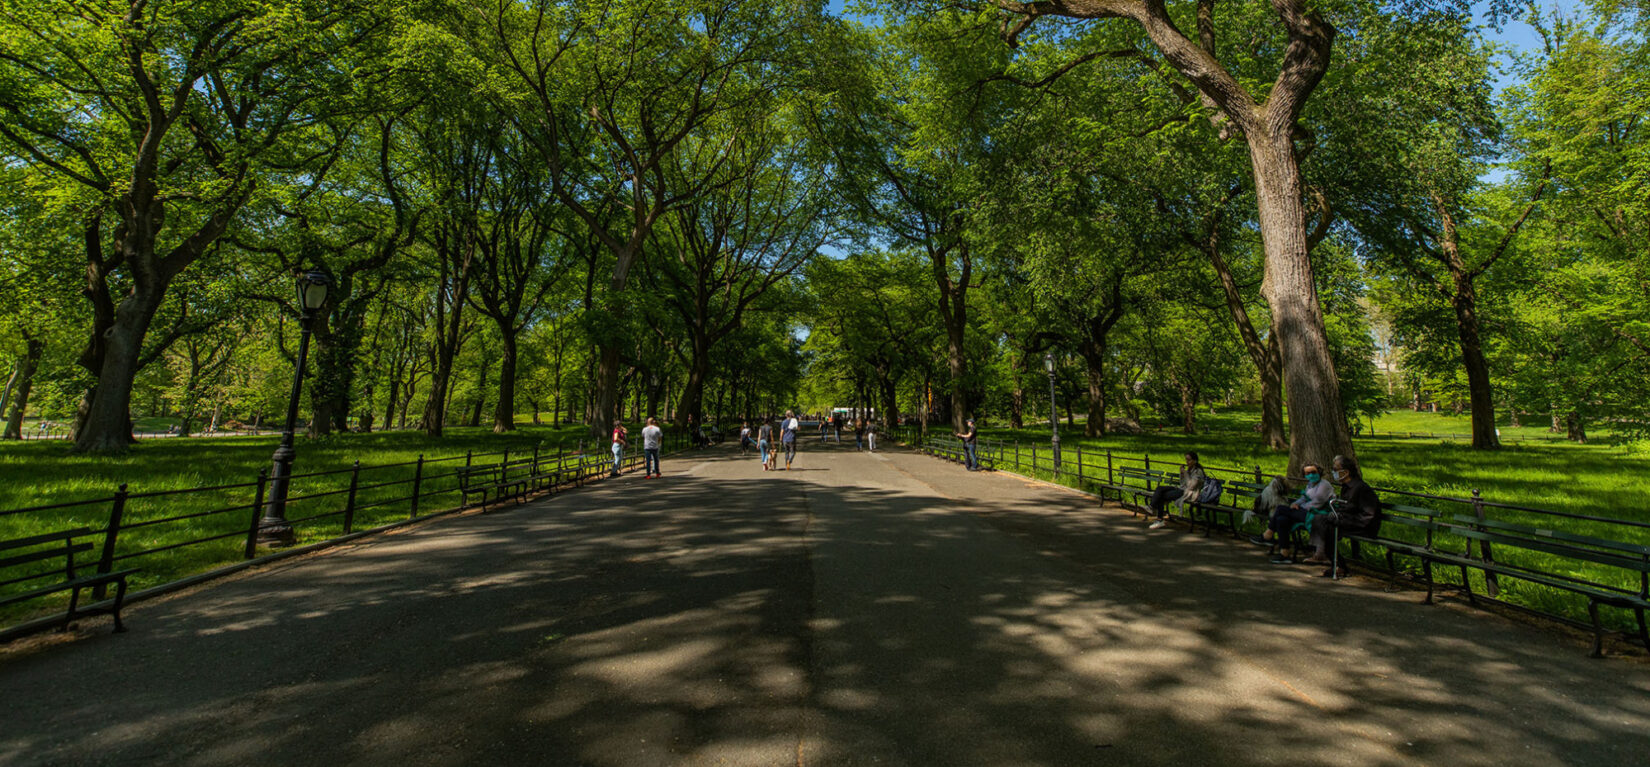 Looking down the length of the Mall in spring